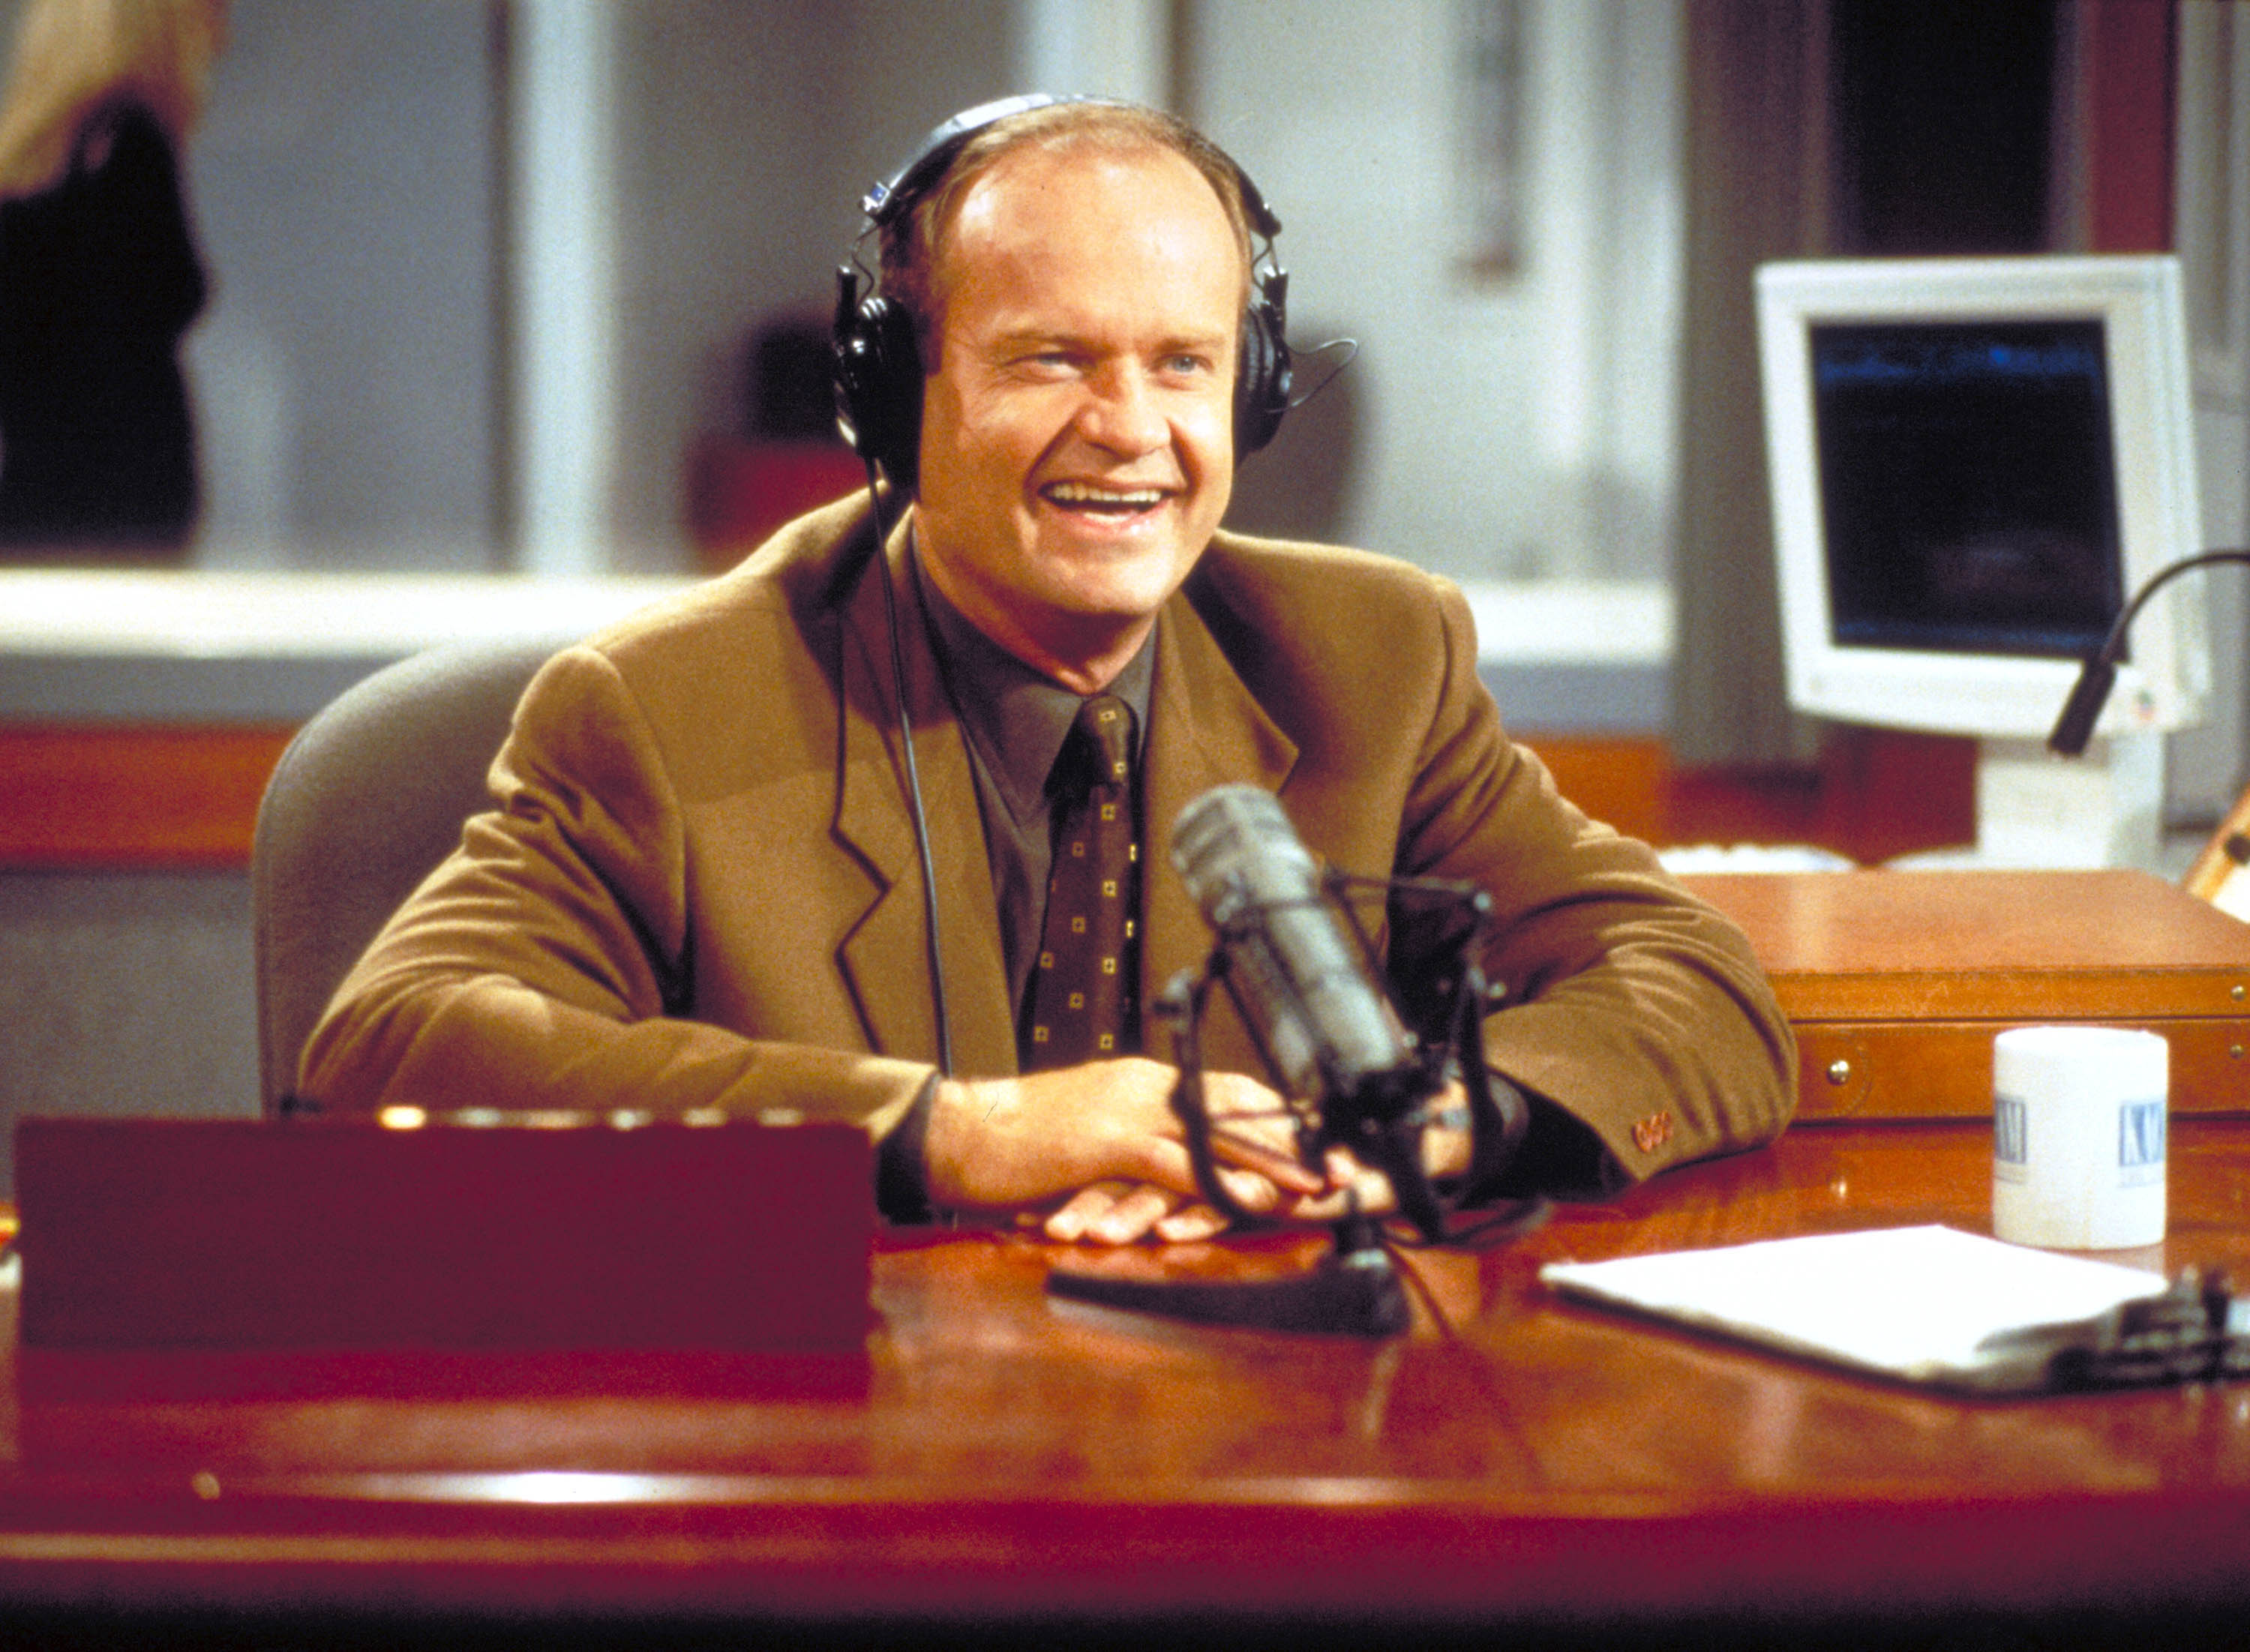 Kelsey Grammer to Return for 'Frasier' Reboot: 'I Gleefully Anticipate Sharing the Next Chapter' - Rolling Stone